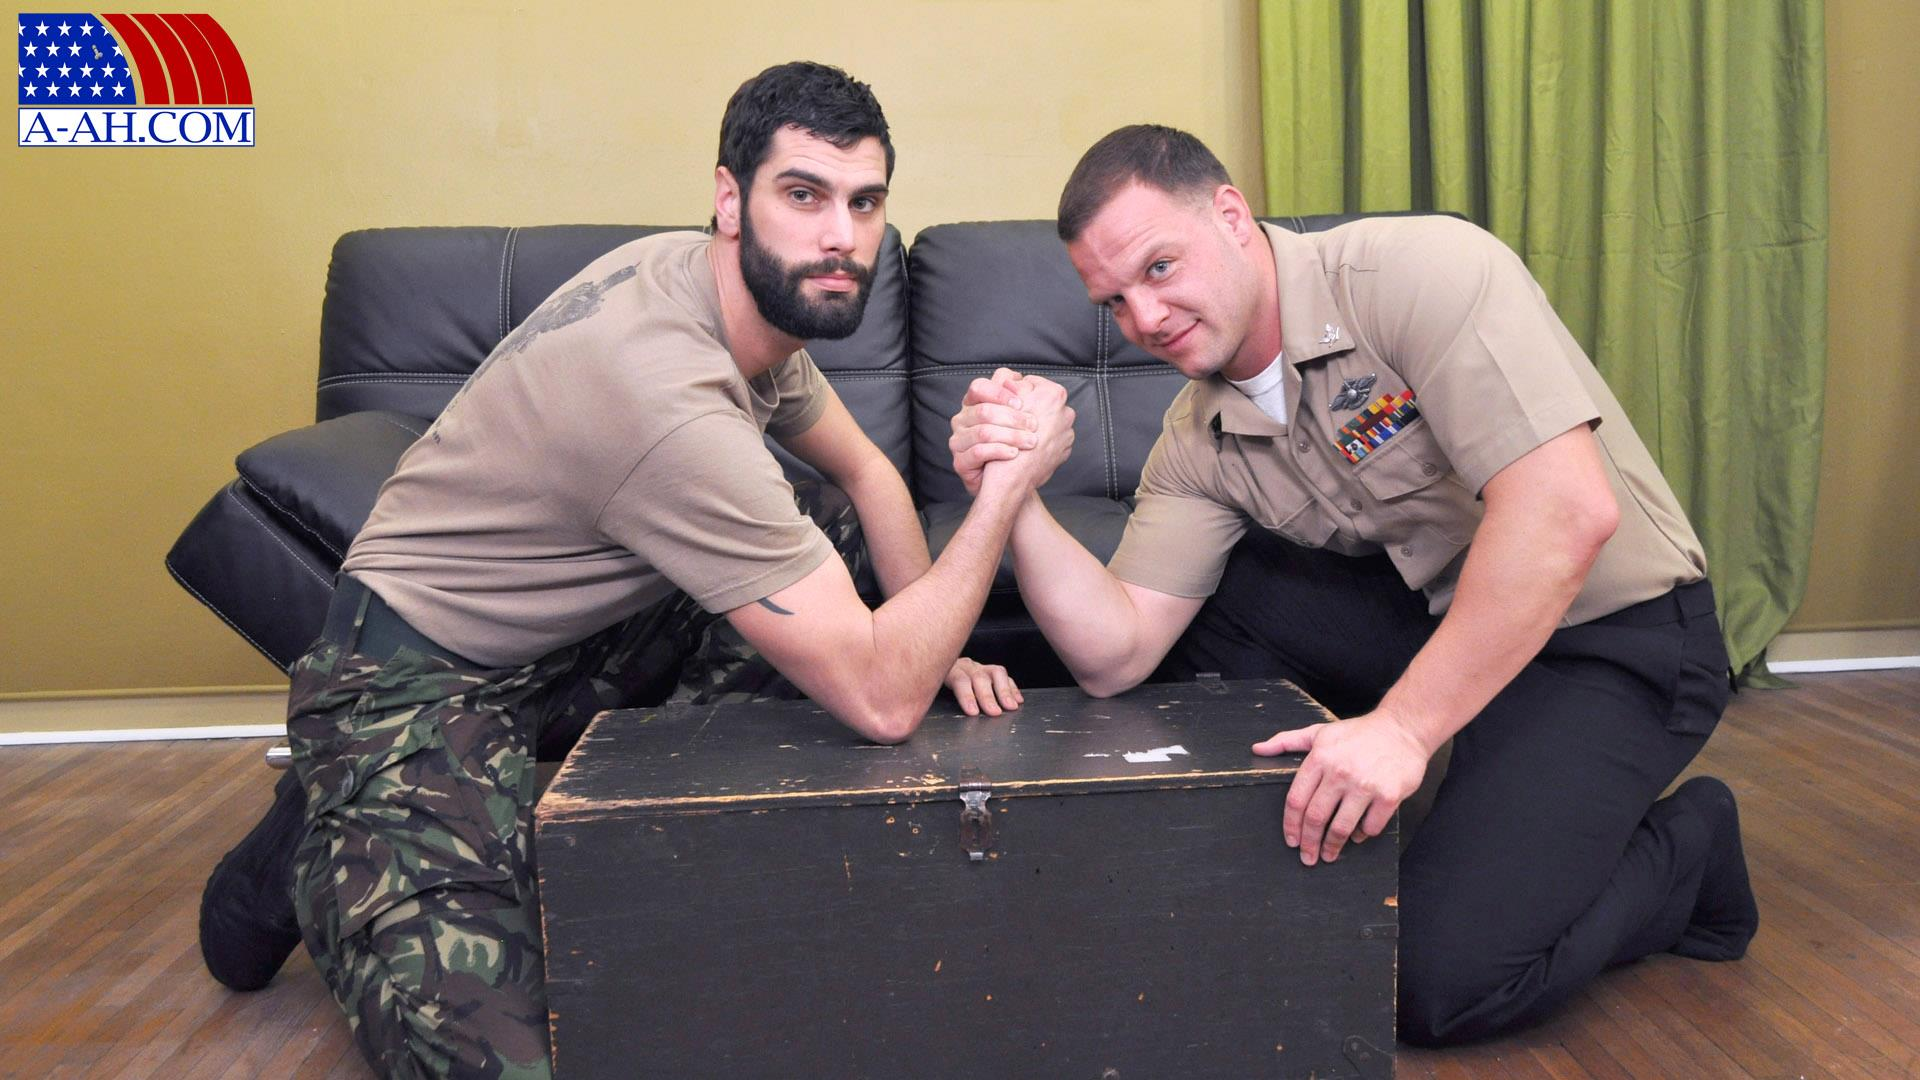 All American Heroes PRIVATE ANTONIO AND NAVY CORPSMAN LOGAN Military Guys Sucking Cock Amateur Gay Porn 01 US Navy Corpsman Trades Blowjobs With A British Army Private